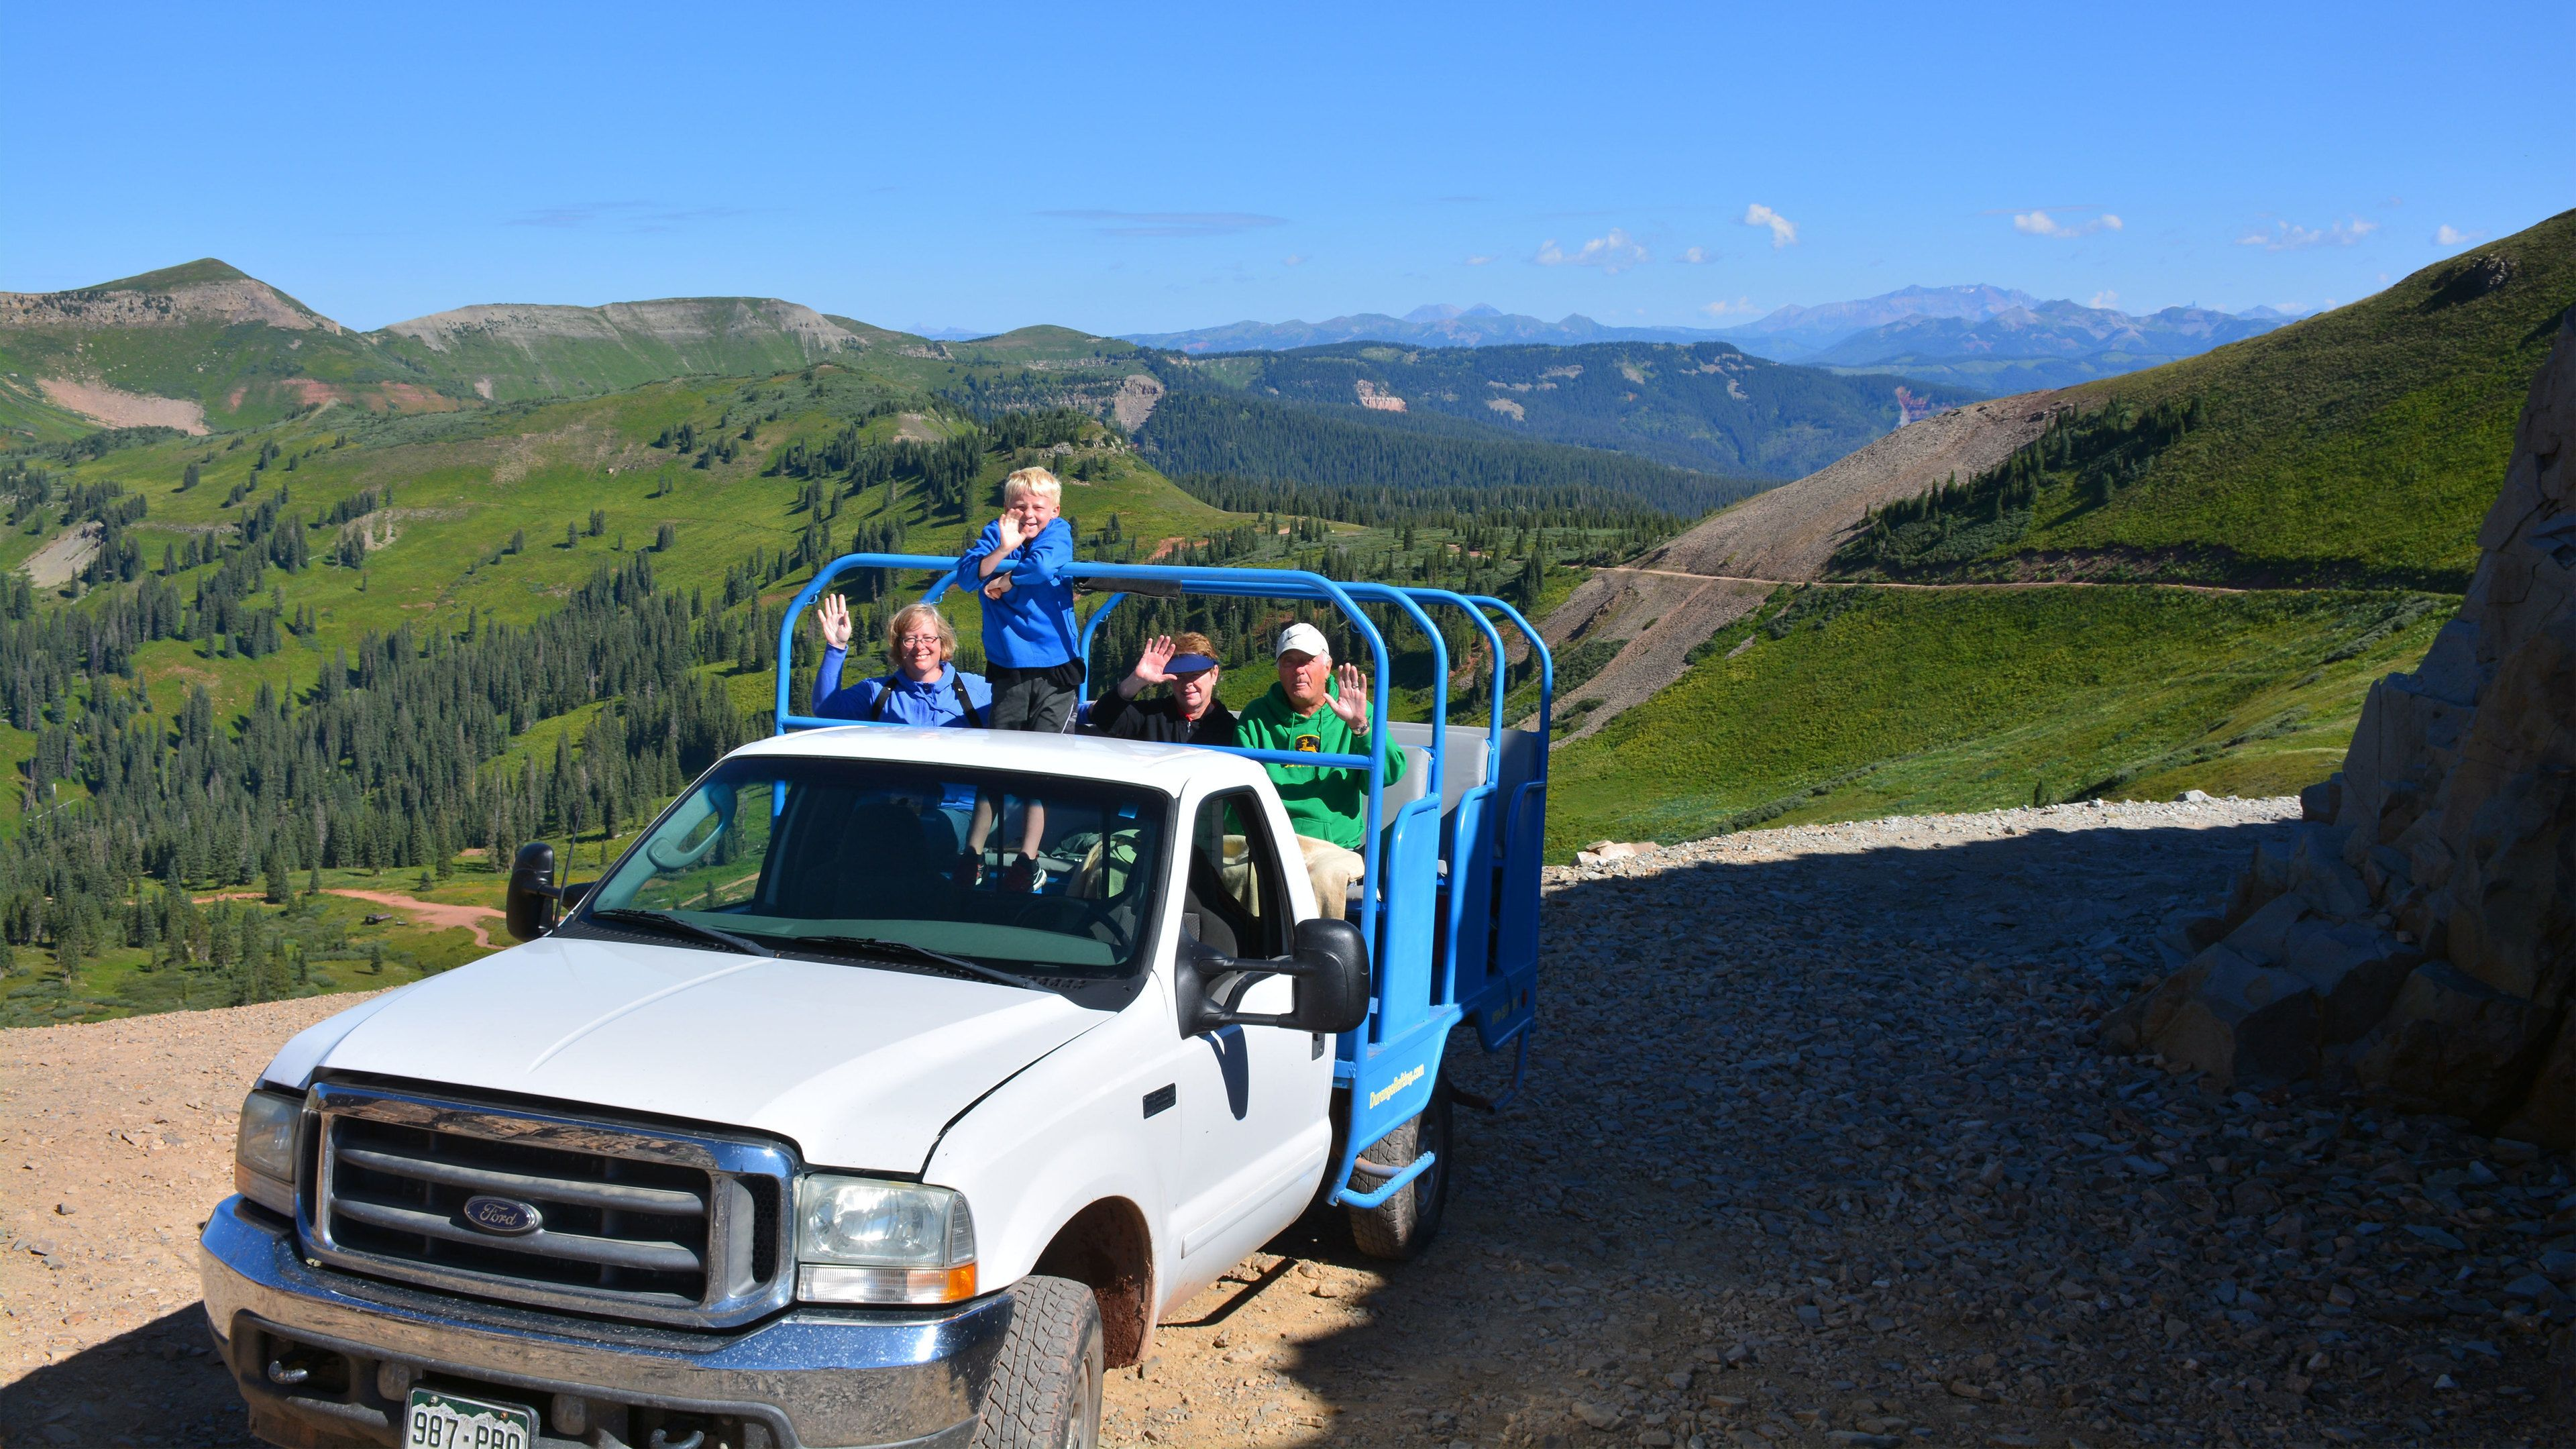 Tour group on a dirt road in the mountains in Denver